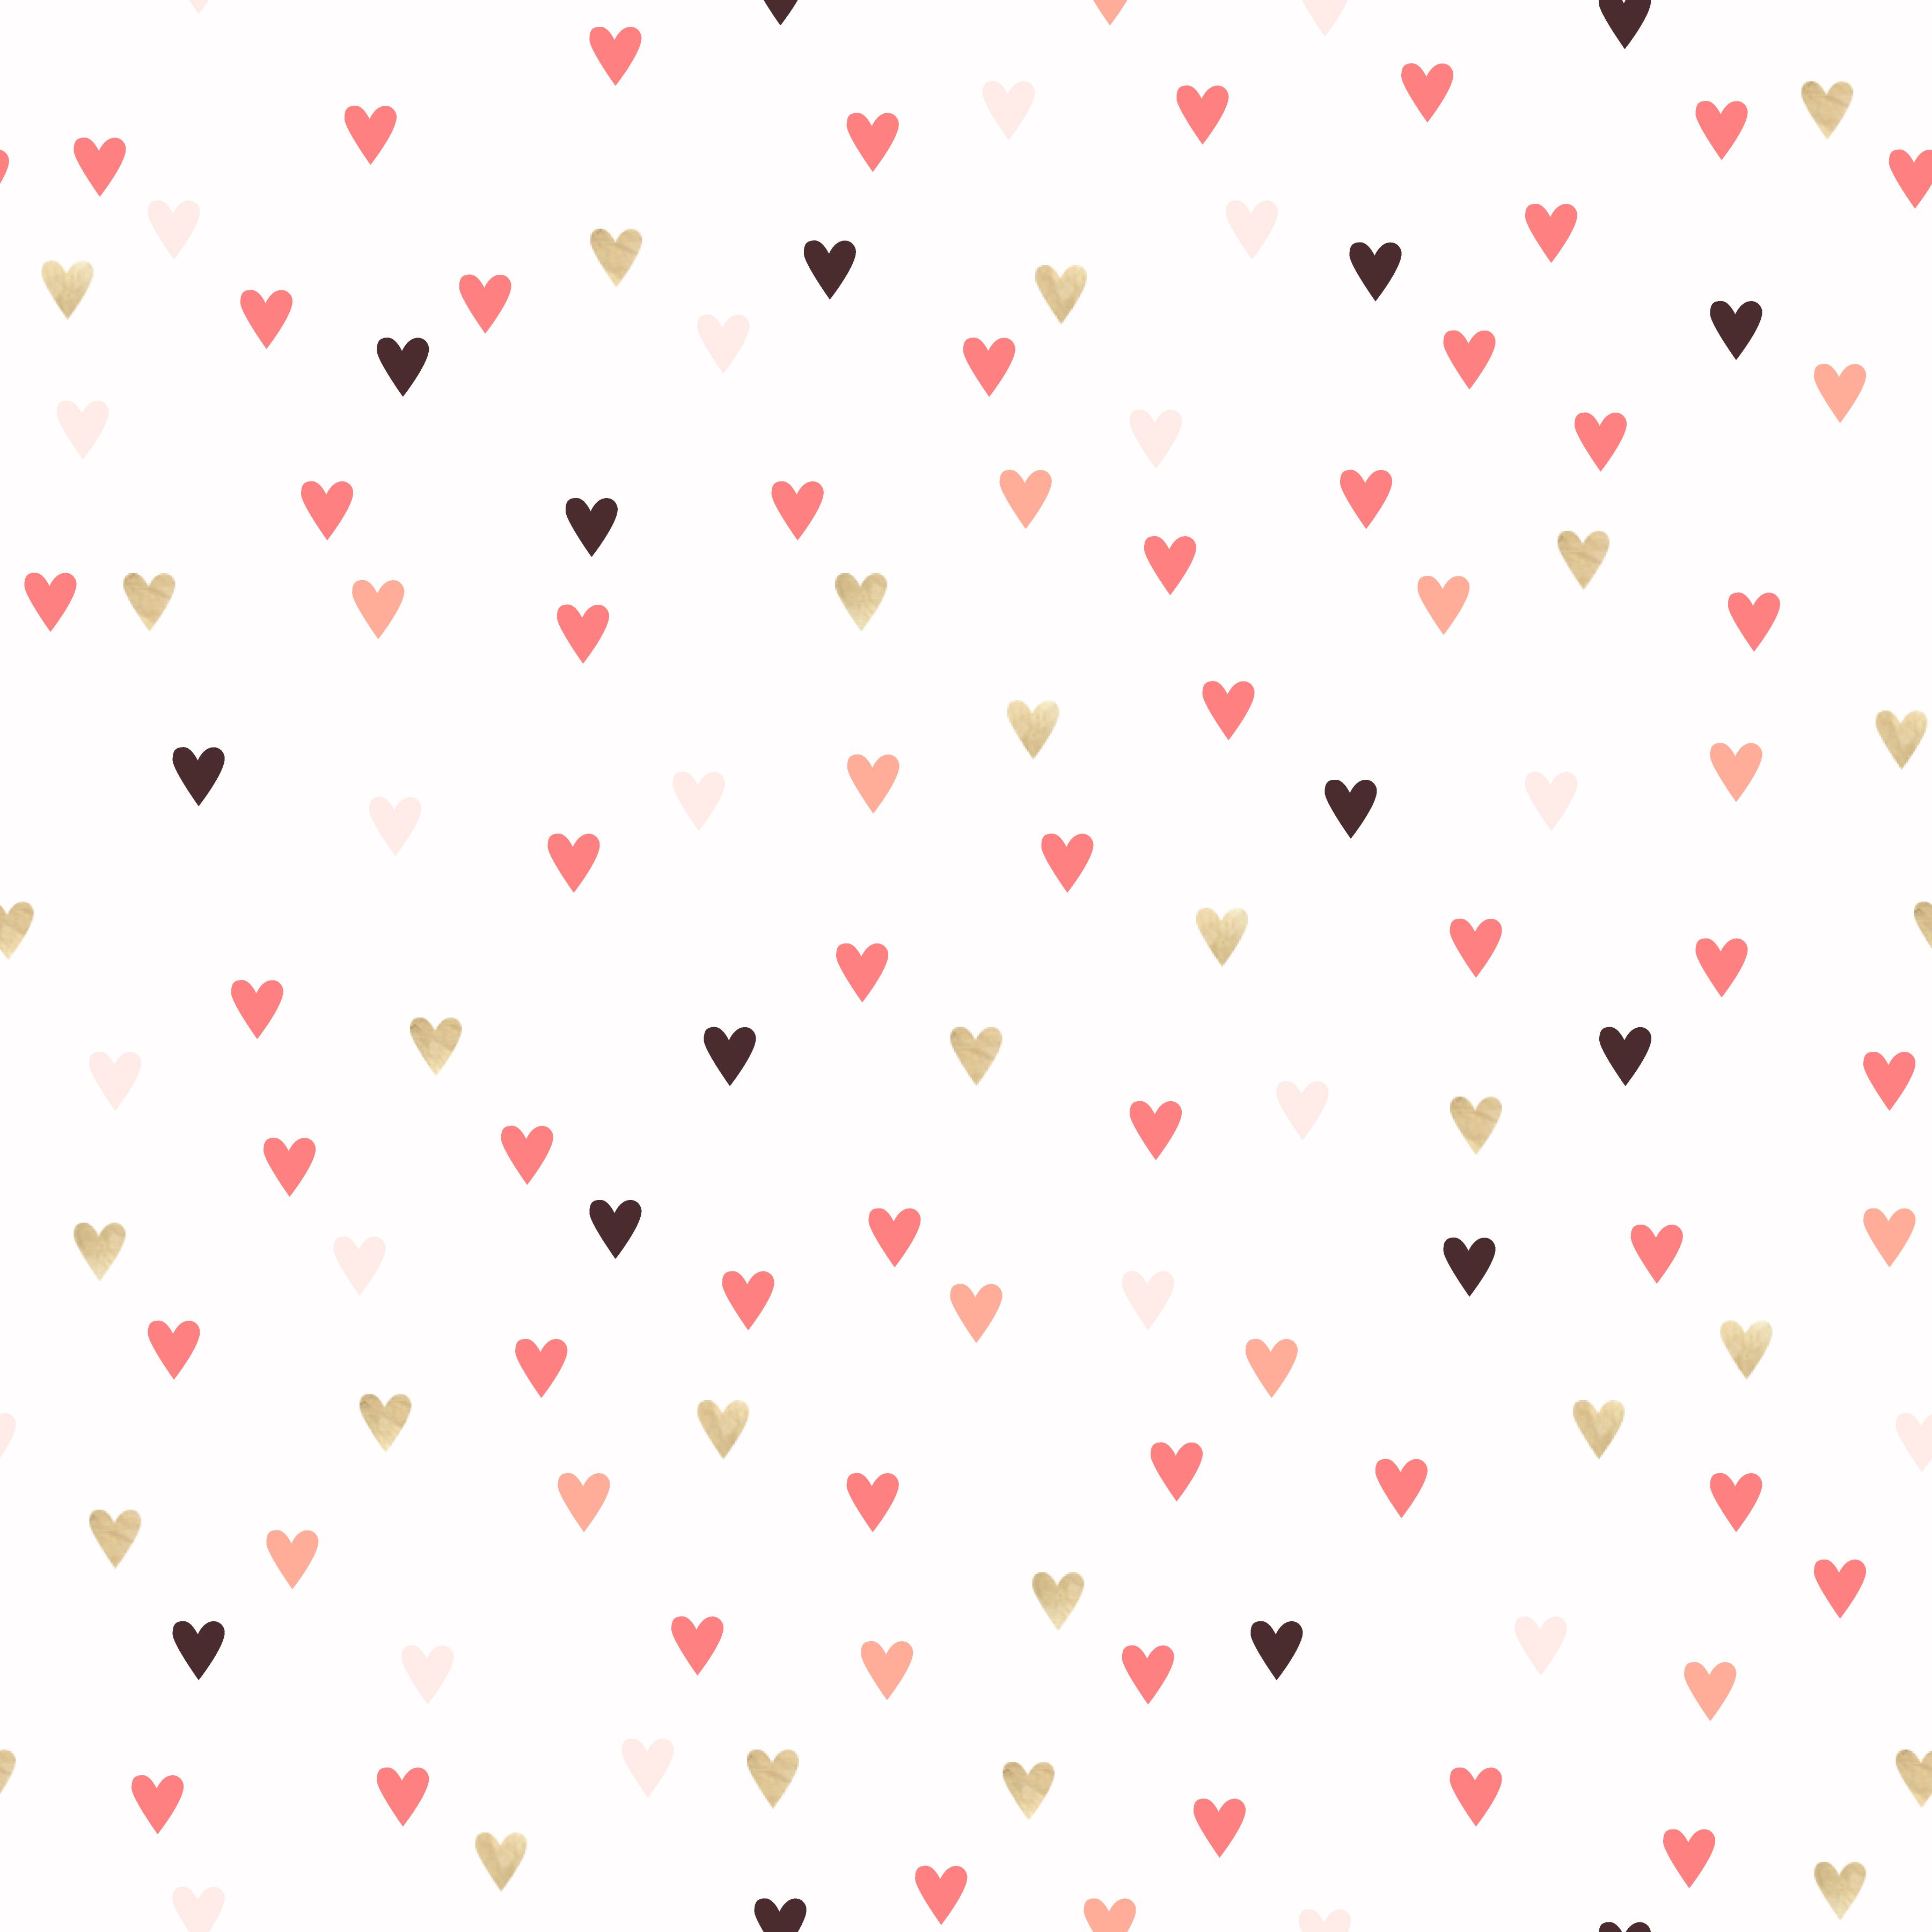 Hearts White Pink